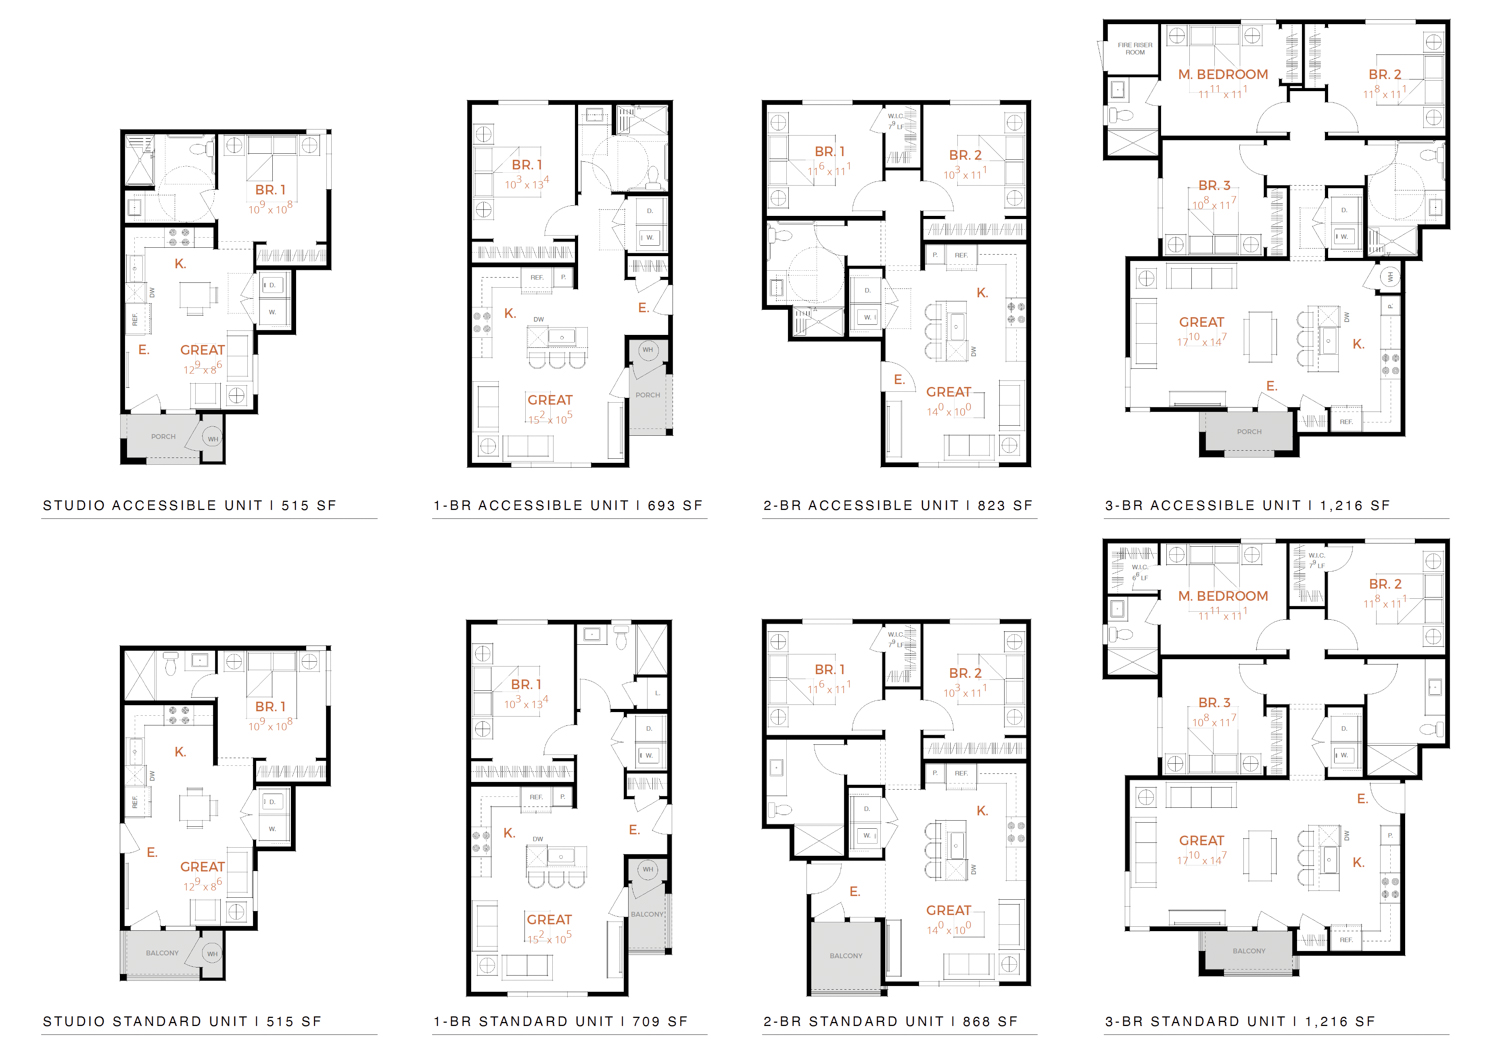 5842 Carson Drive floorplans, drawing by JDA Architects